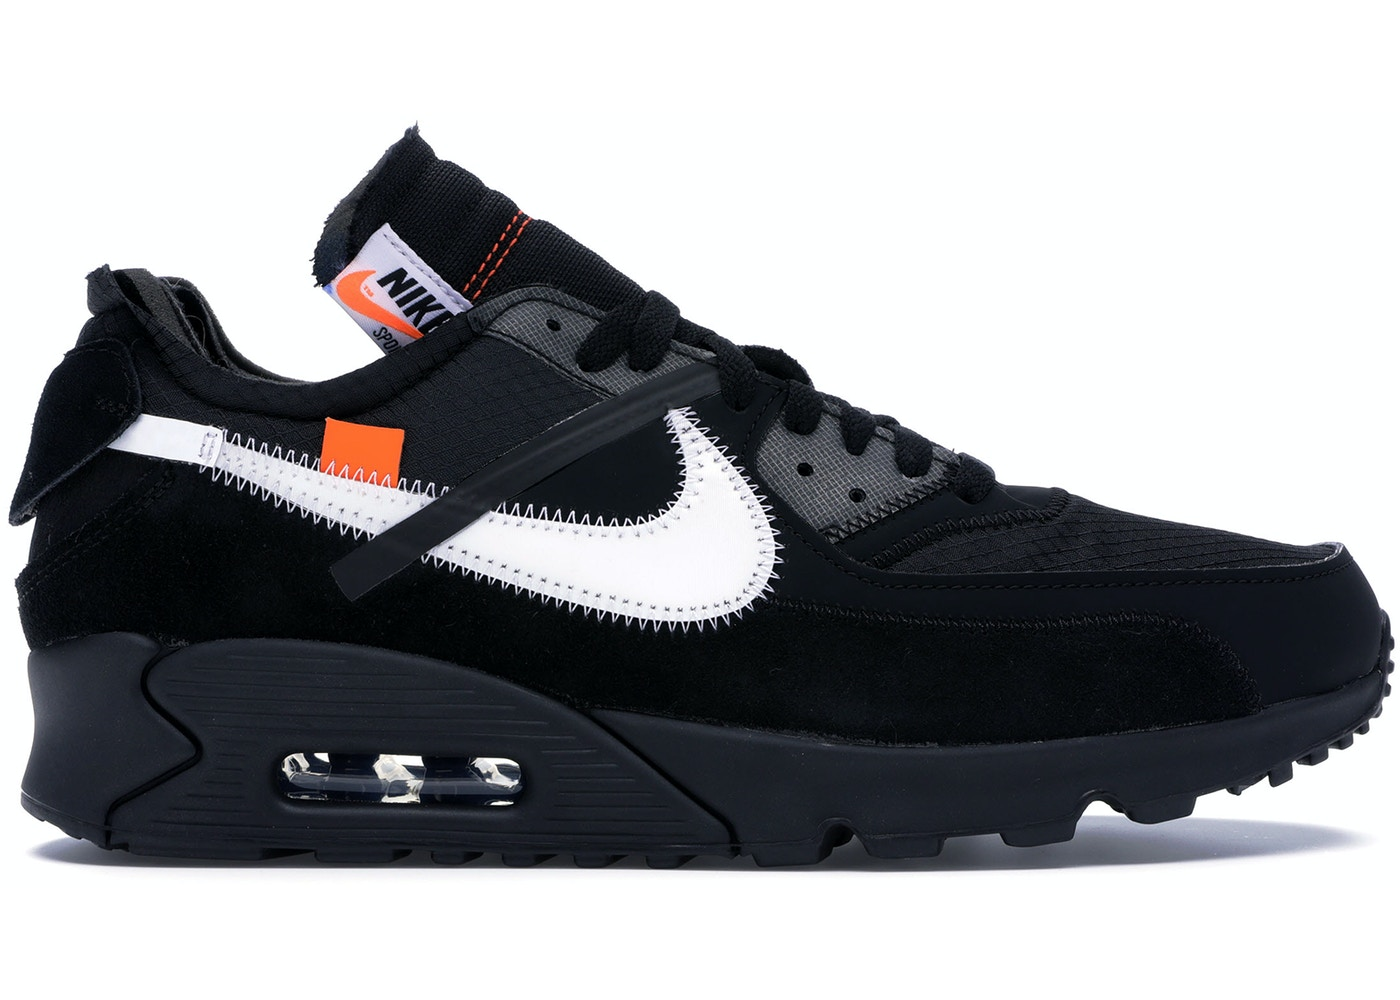 outlet store dc39e 8bb56 Air Max 90 OFF-WHITE Black - AA7293-001